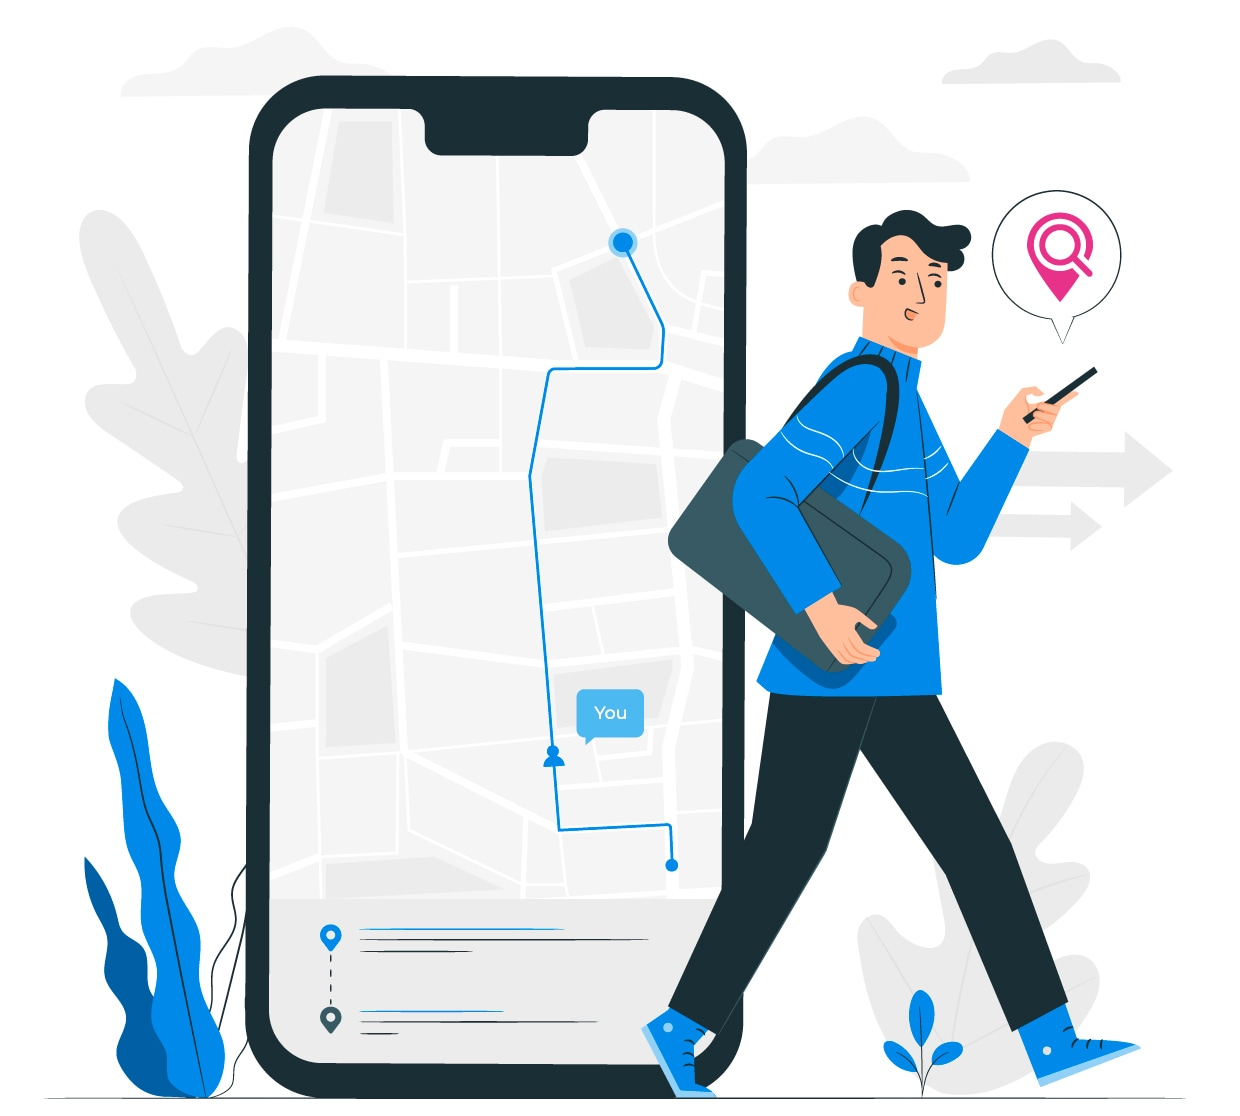 Location Intelligence APIs